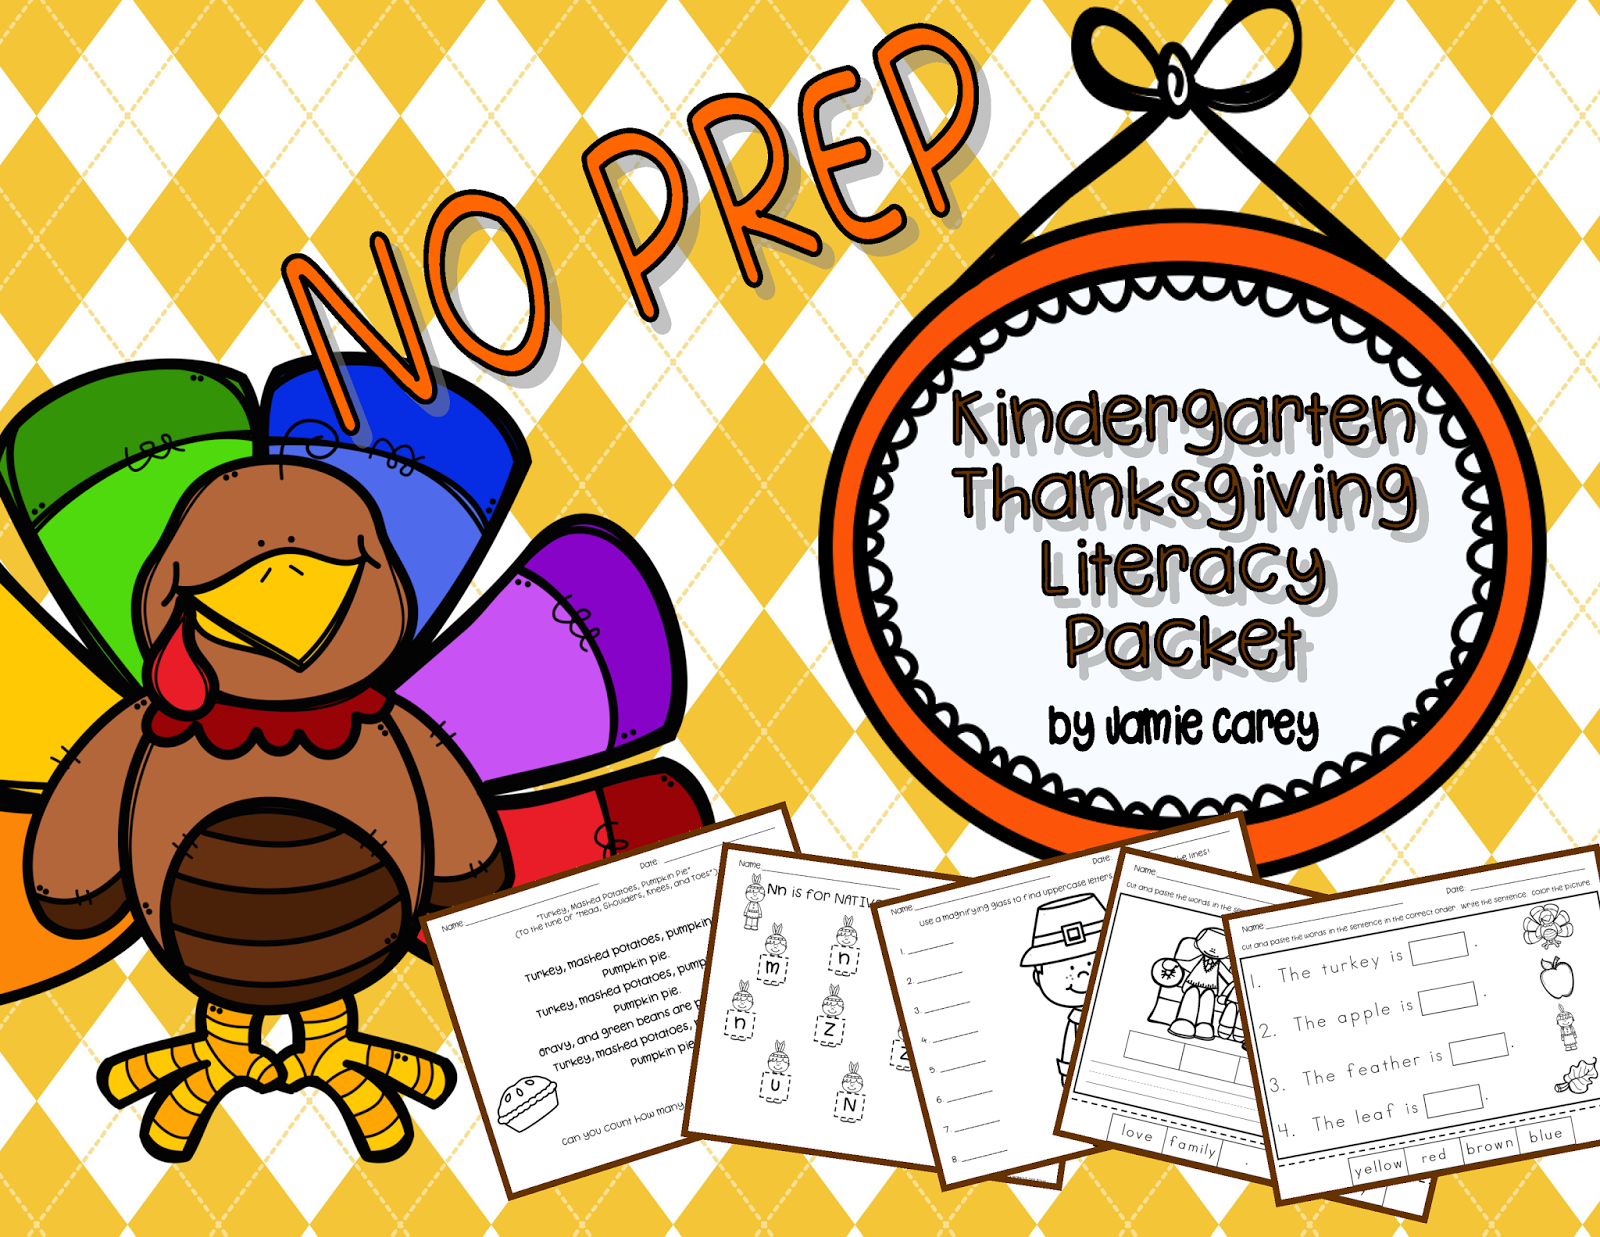 http://www.teacherspayteachers.com/Product/NO-PREP-Kindergarten-Thanksgiving-Activities-Literacy-1566683